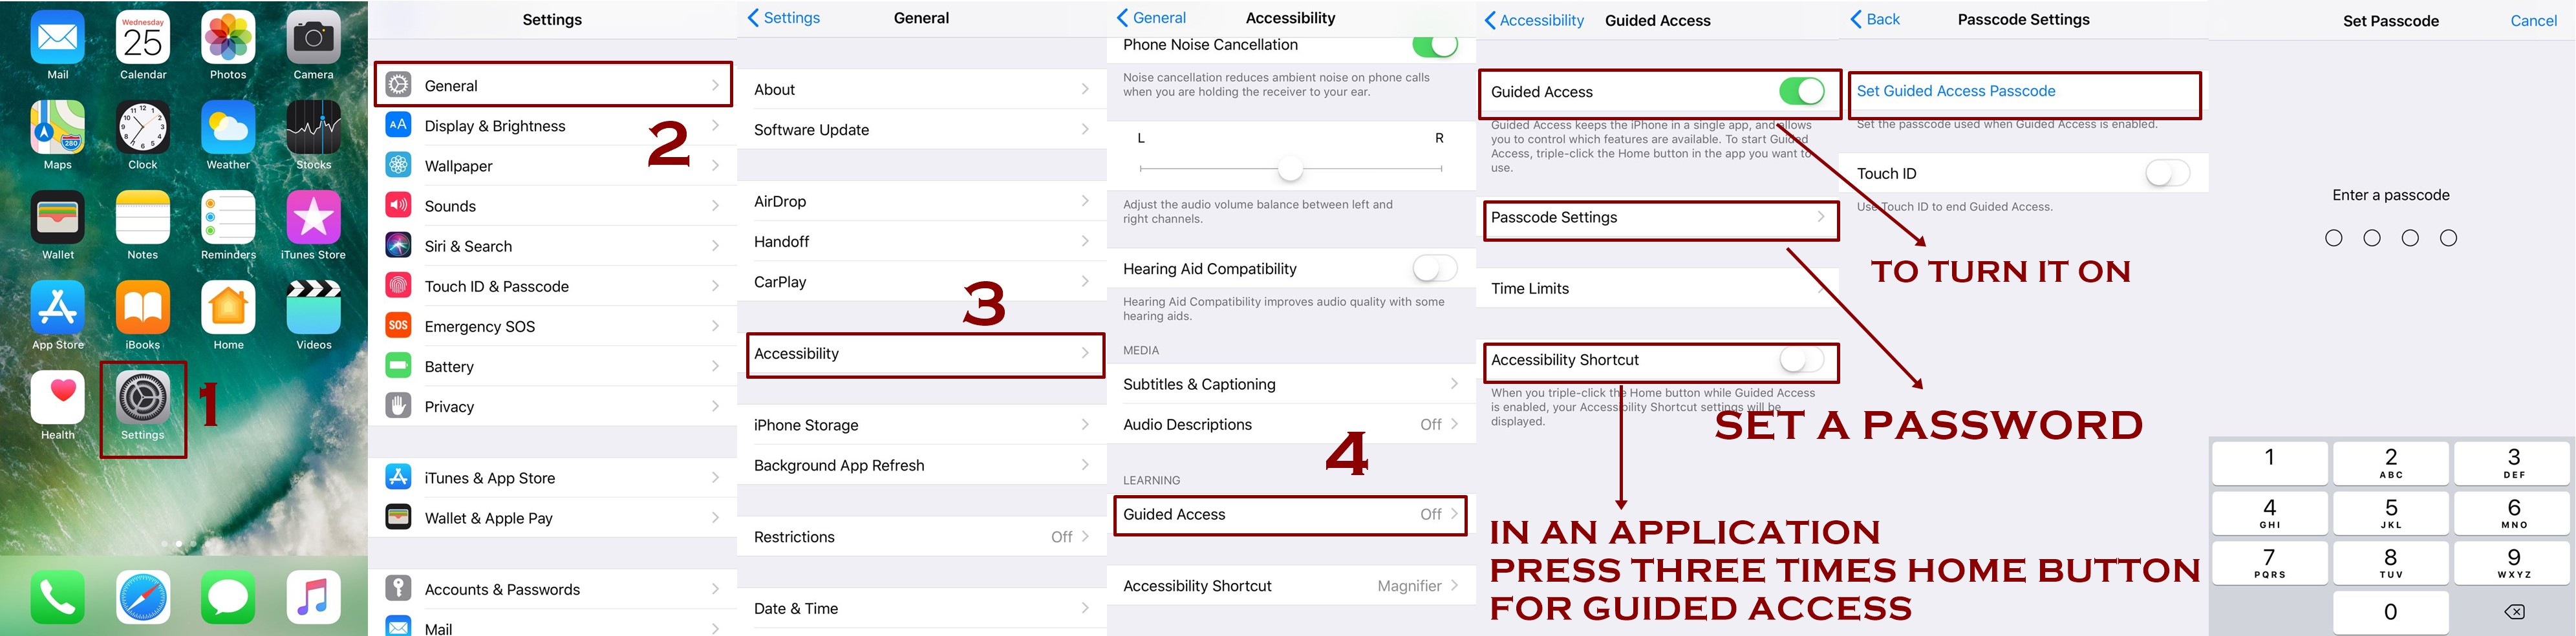 how to enable guided access iphone - Homepage